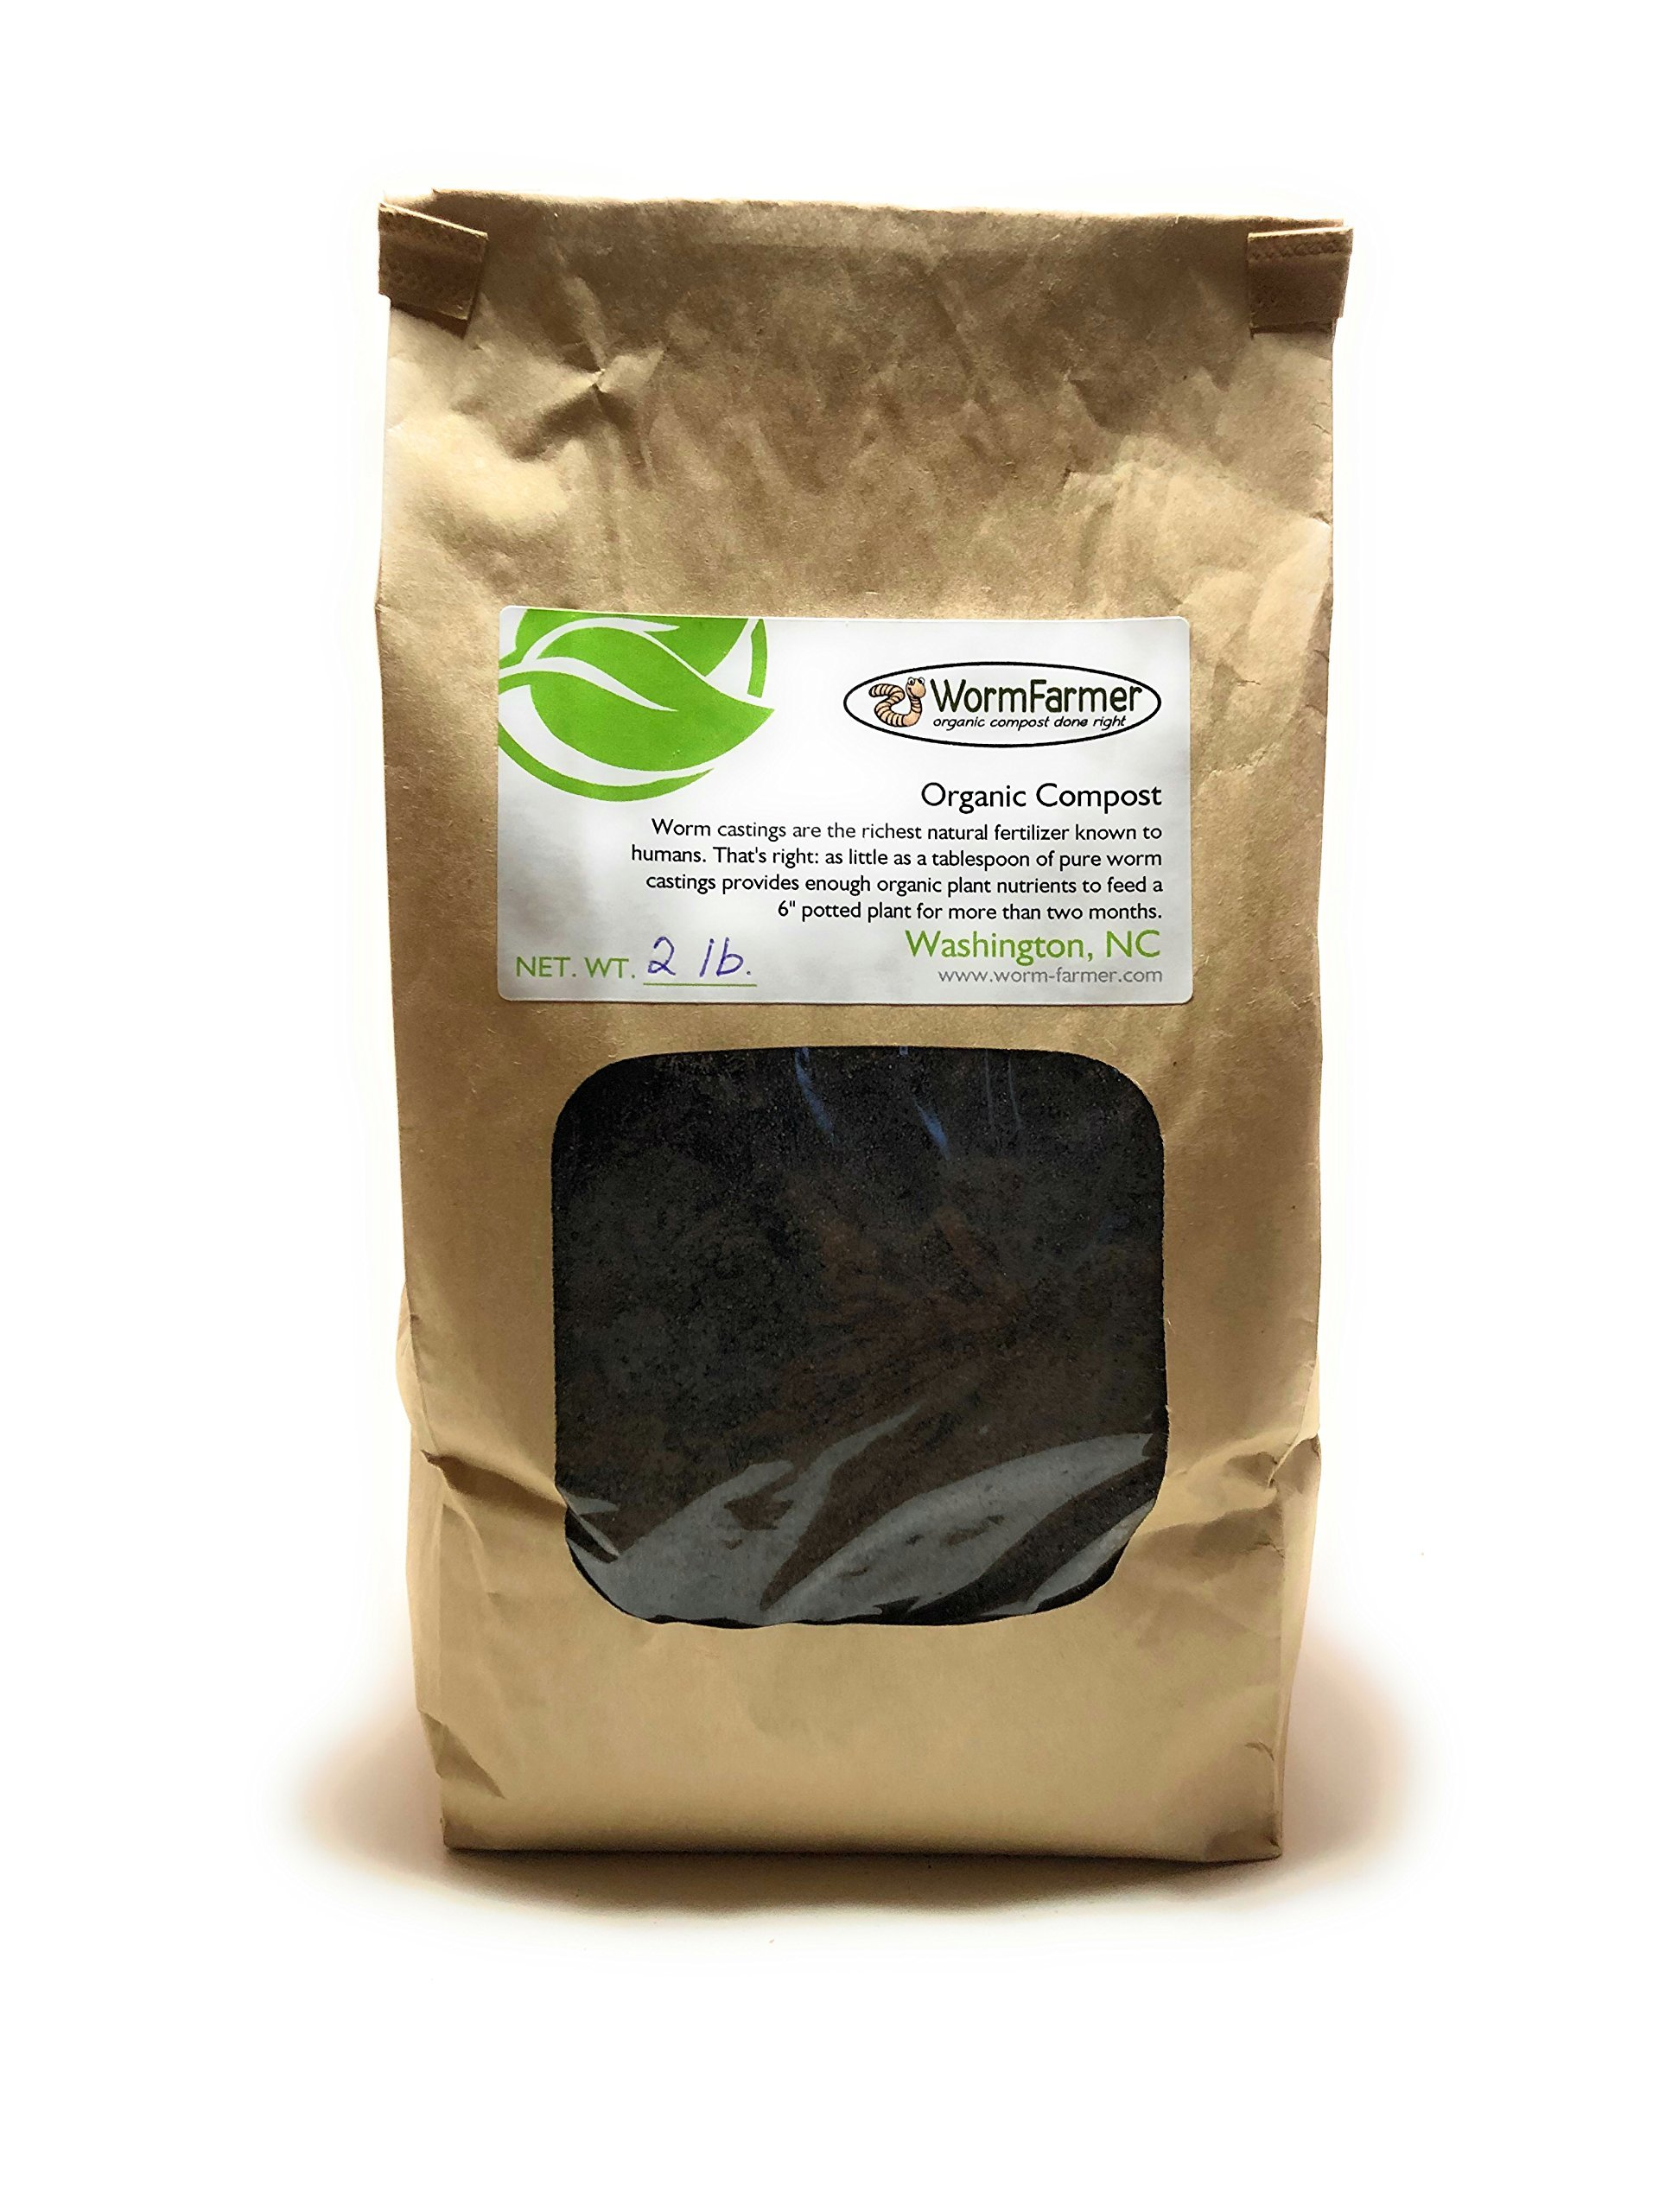 Worm Farmer Organic Compost Worm Castings Vermicompost 2 lb. Great for Plants Flowers Vegetables Gardens